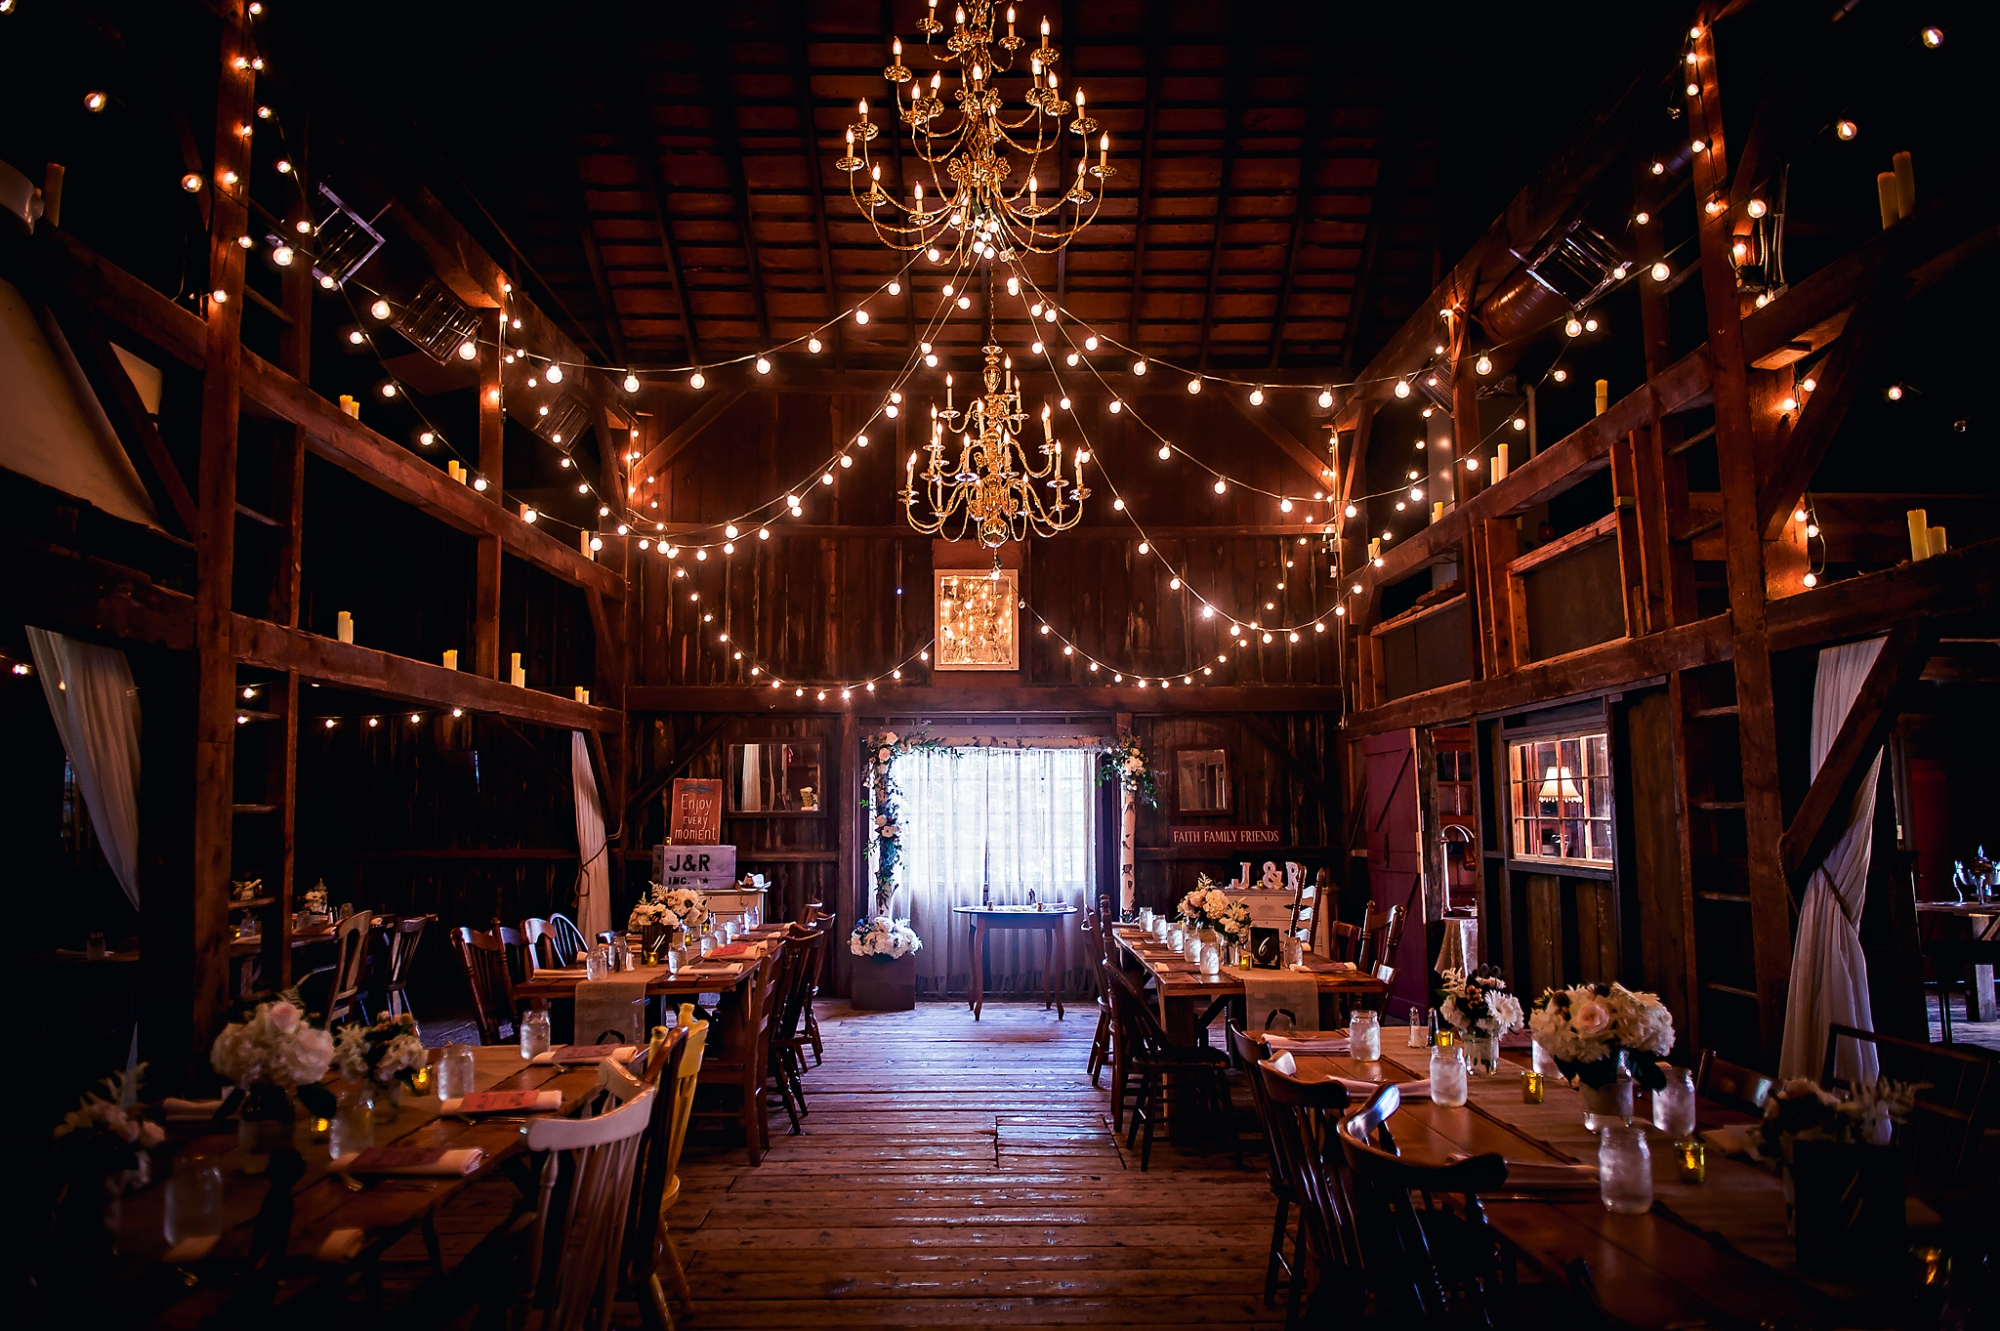 Jacks-Barn-Wedding-Janine-Collette-Photography49